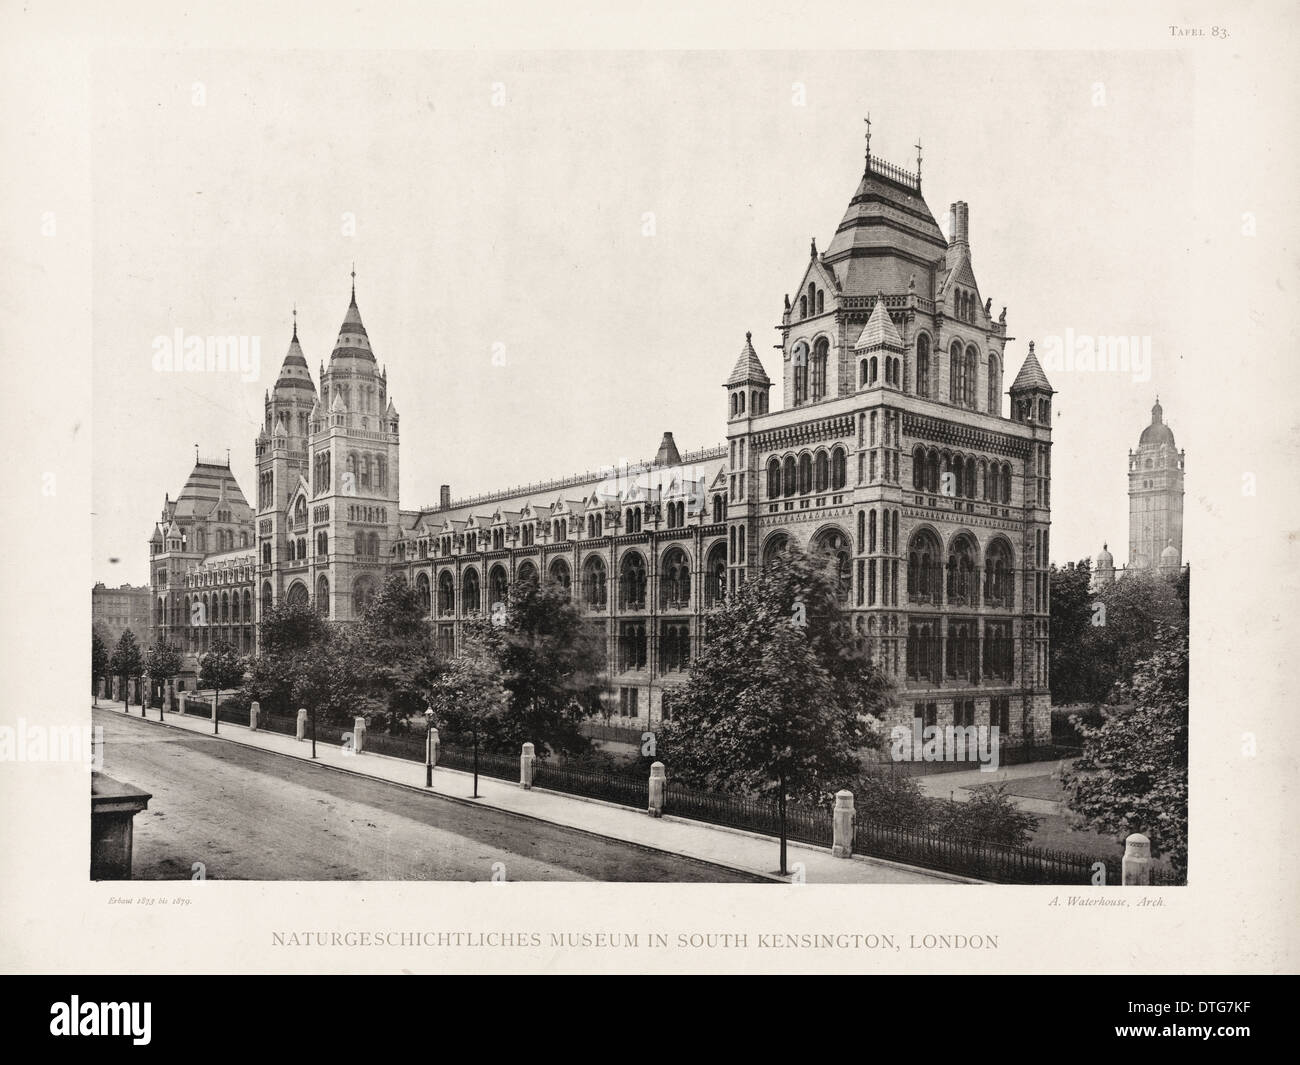 Natural History Museum, London. August 1902 - Stock Image